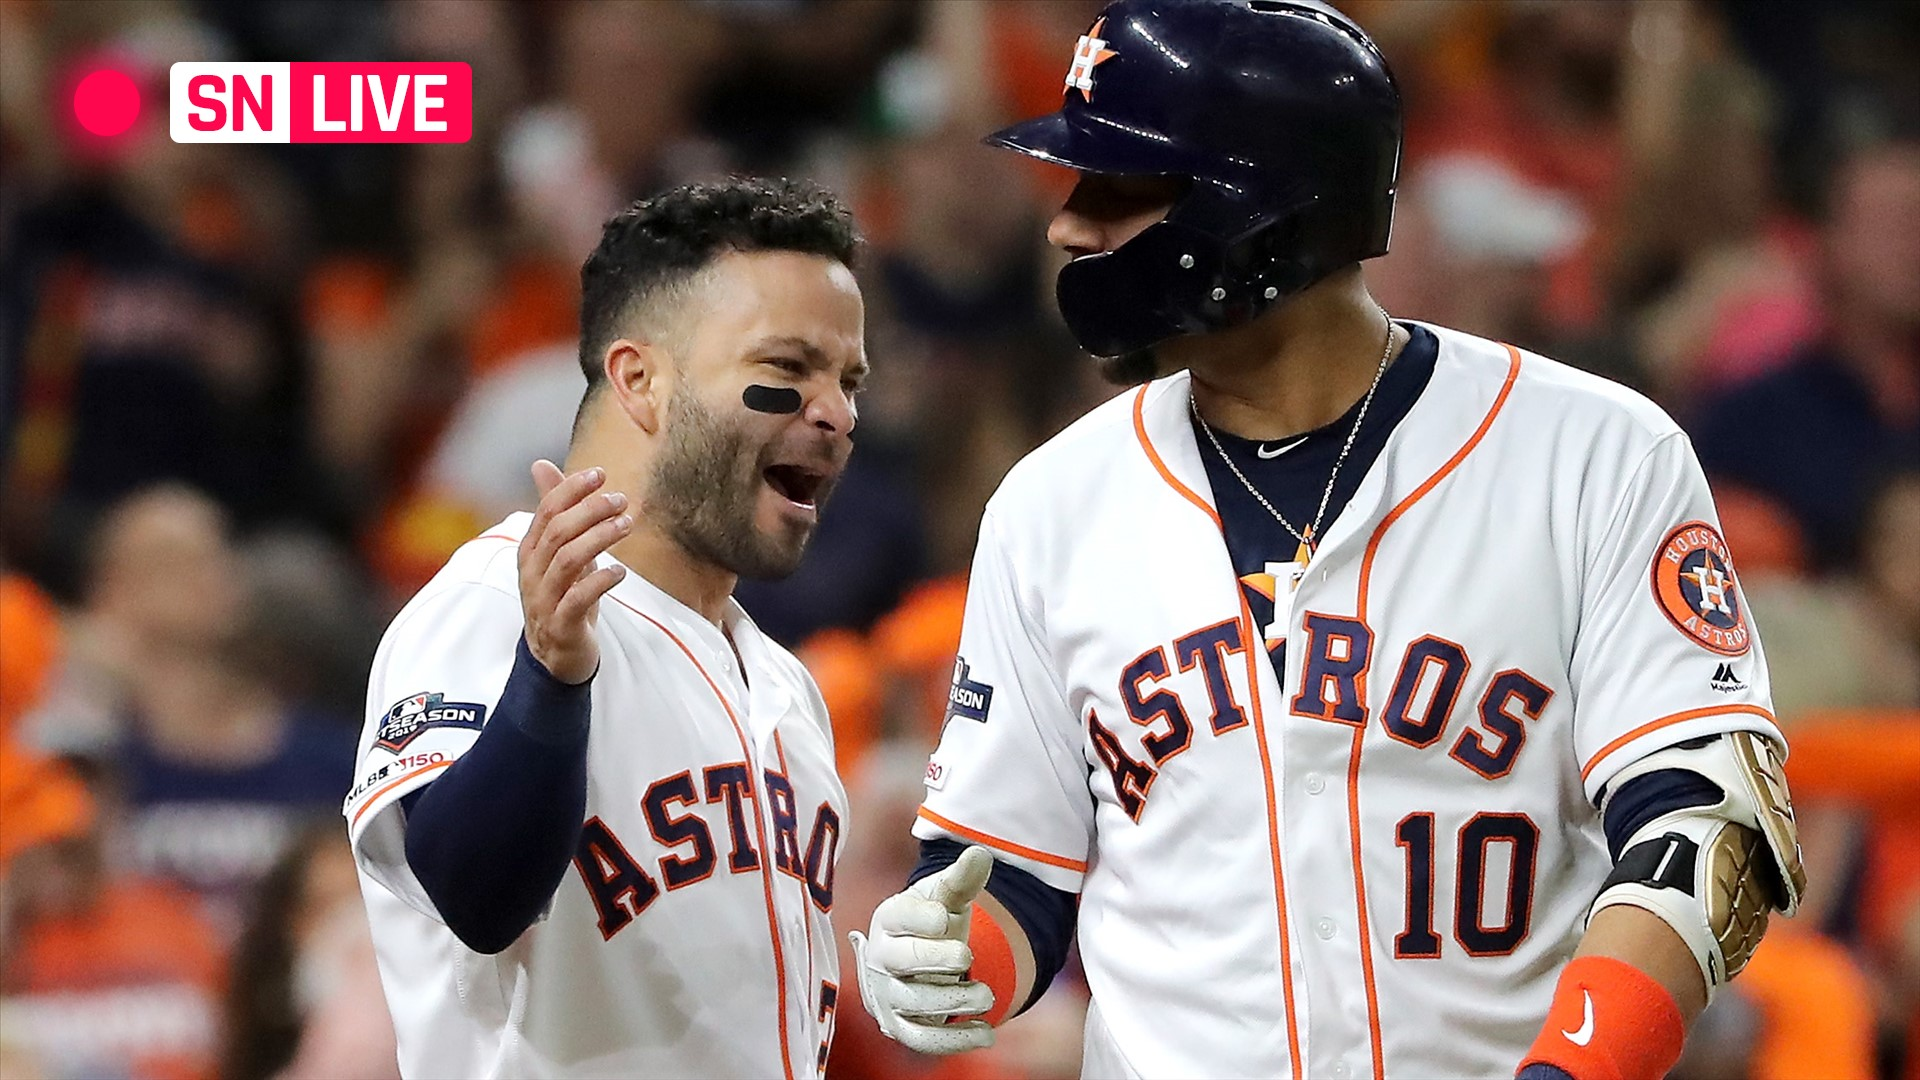 Yankees vs. Astros: Live score, updates, highlights from ALCS Game 6